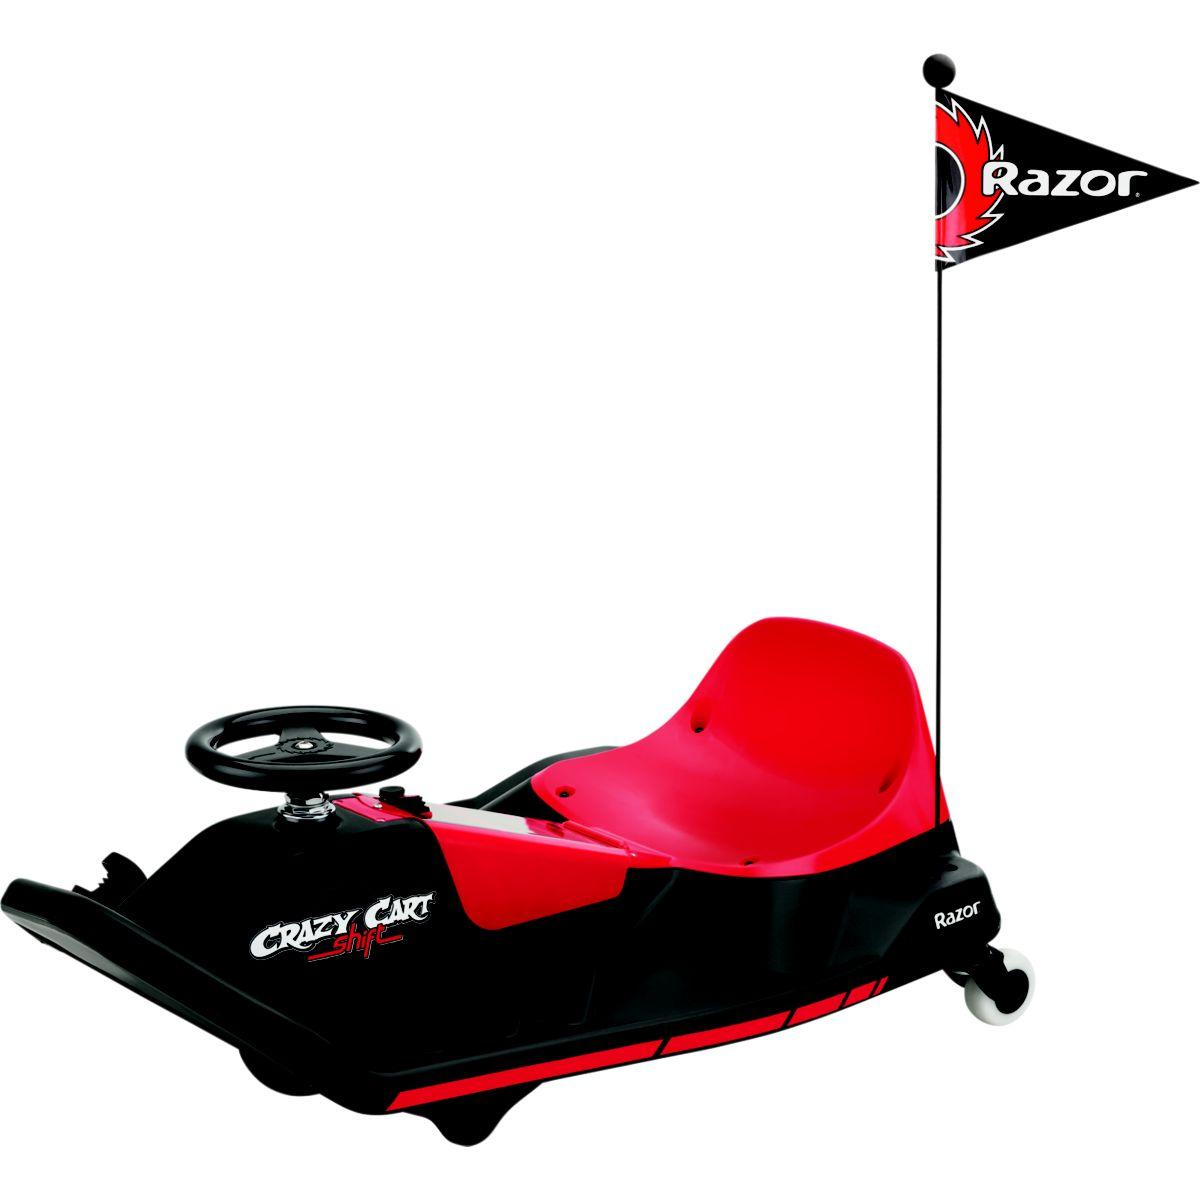 Kart razor crazy cart shift - 2% de remise imm�diate avec le code : priv2 (photo)